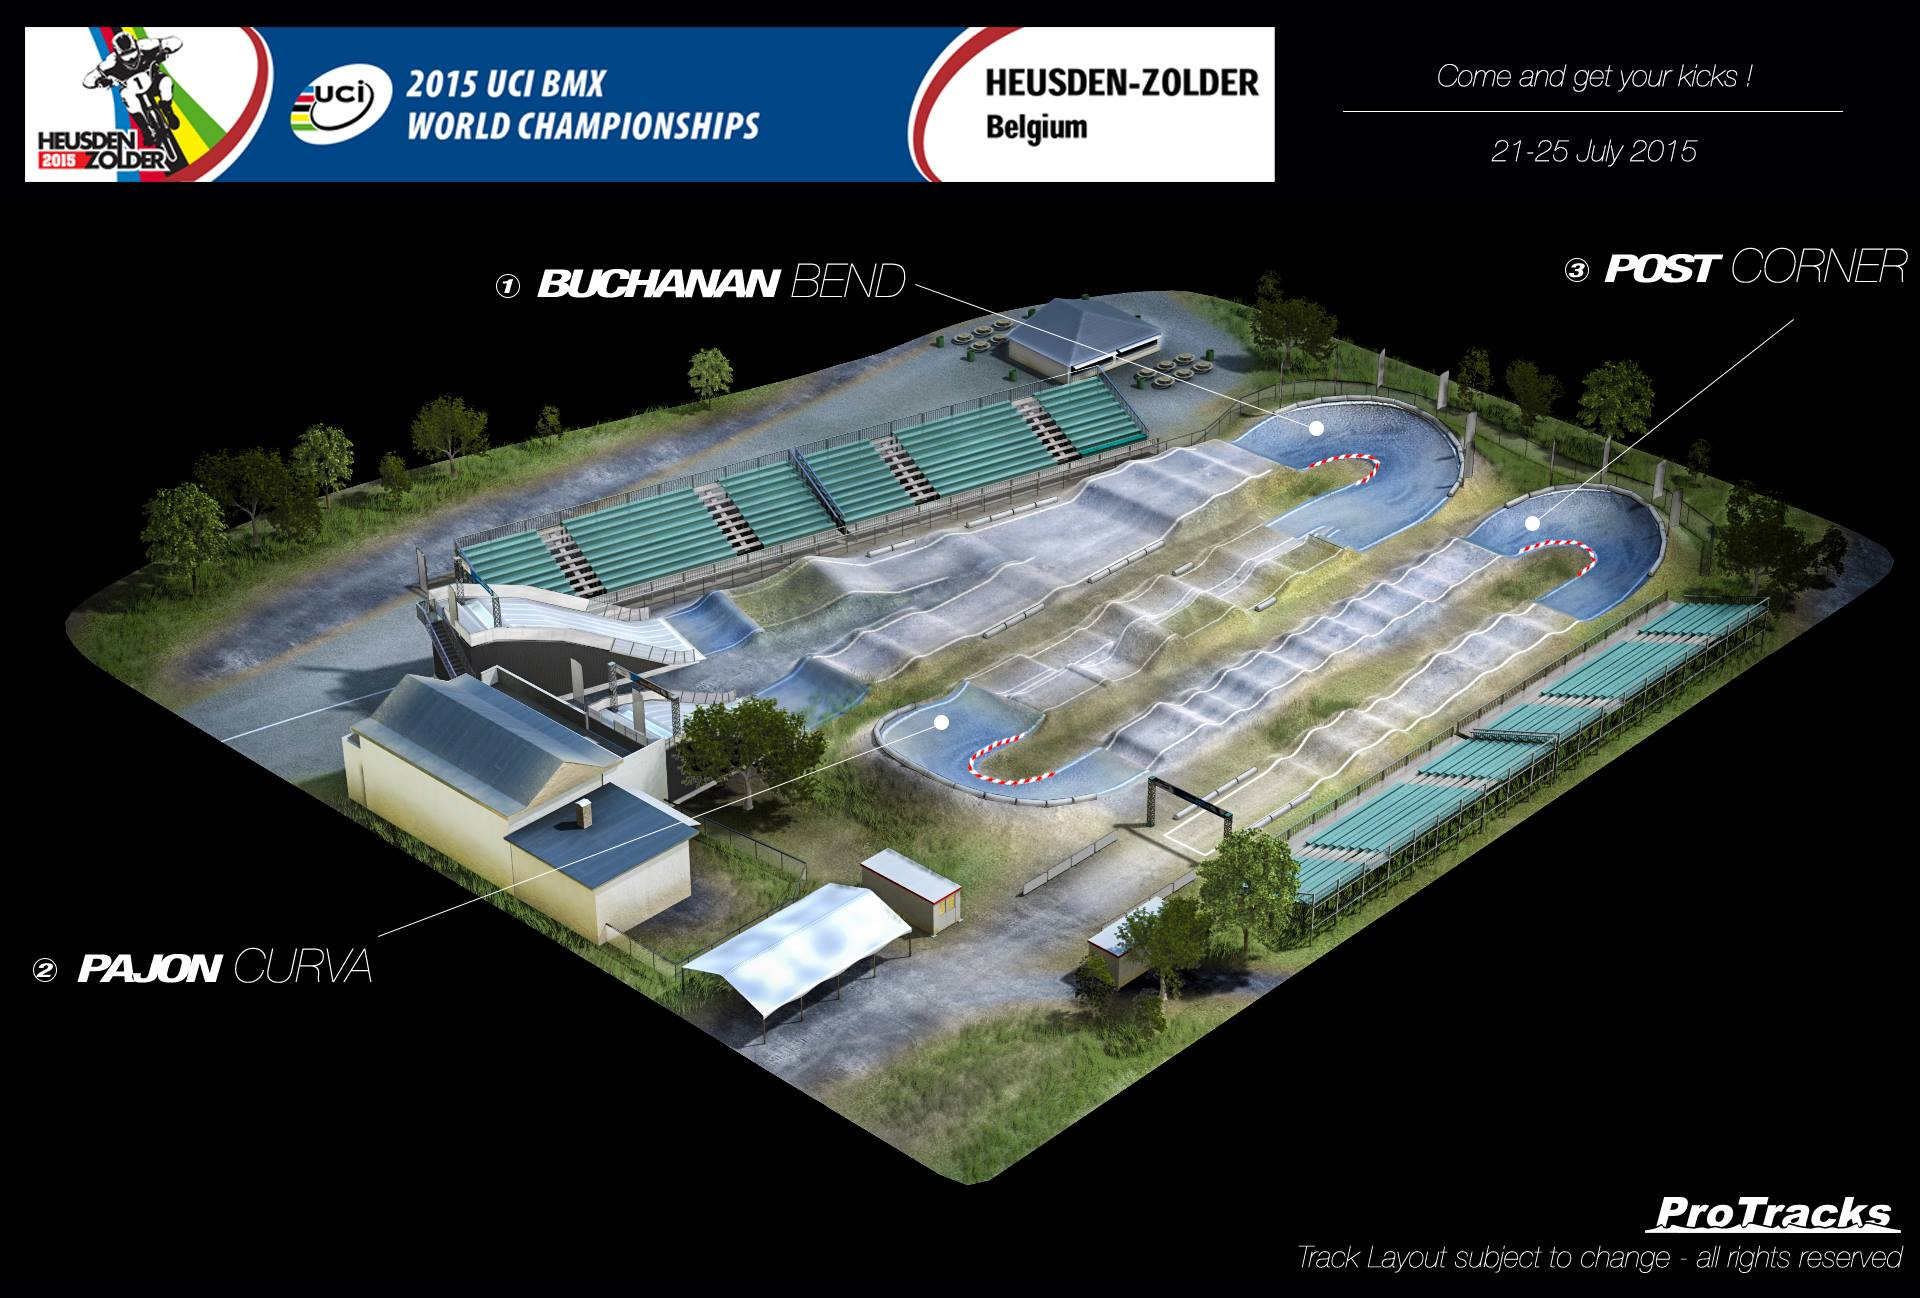 The 2015 UCI BMX World Championships race track is official